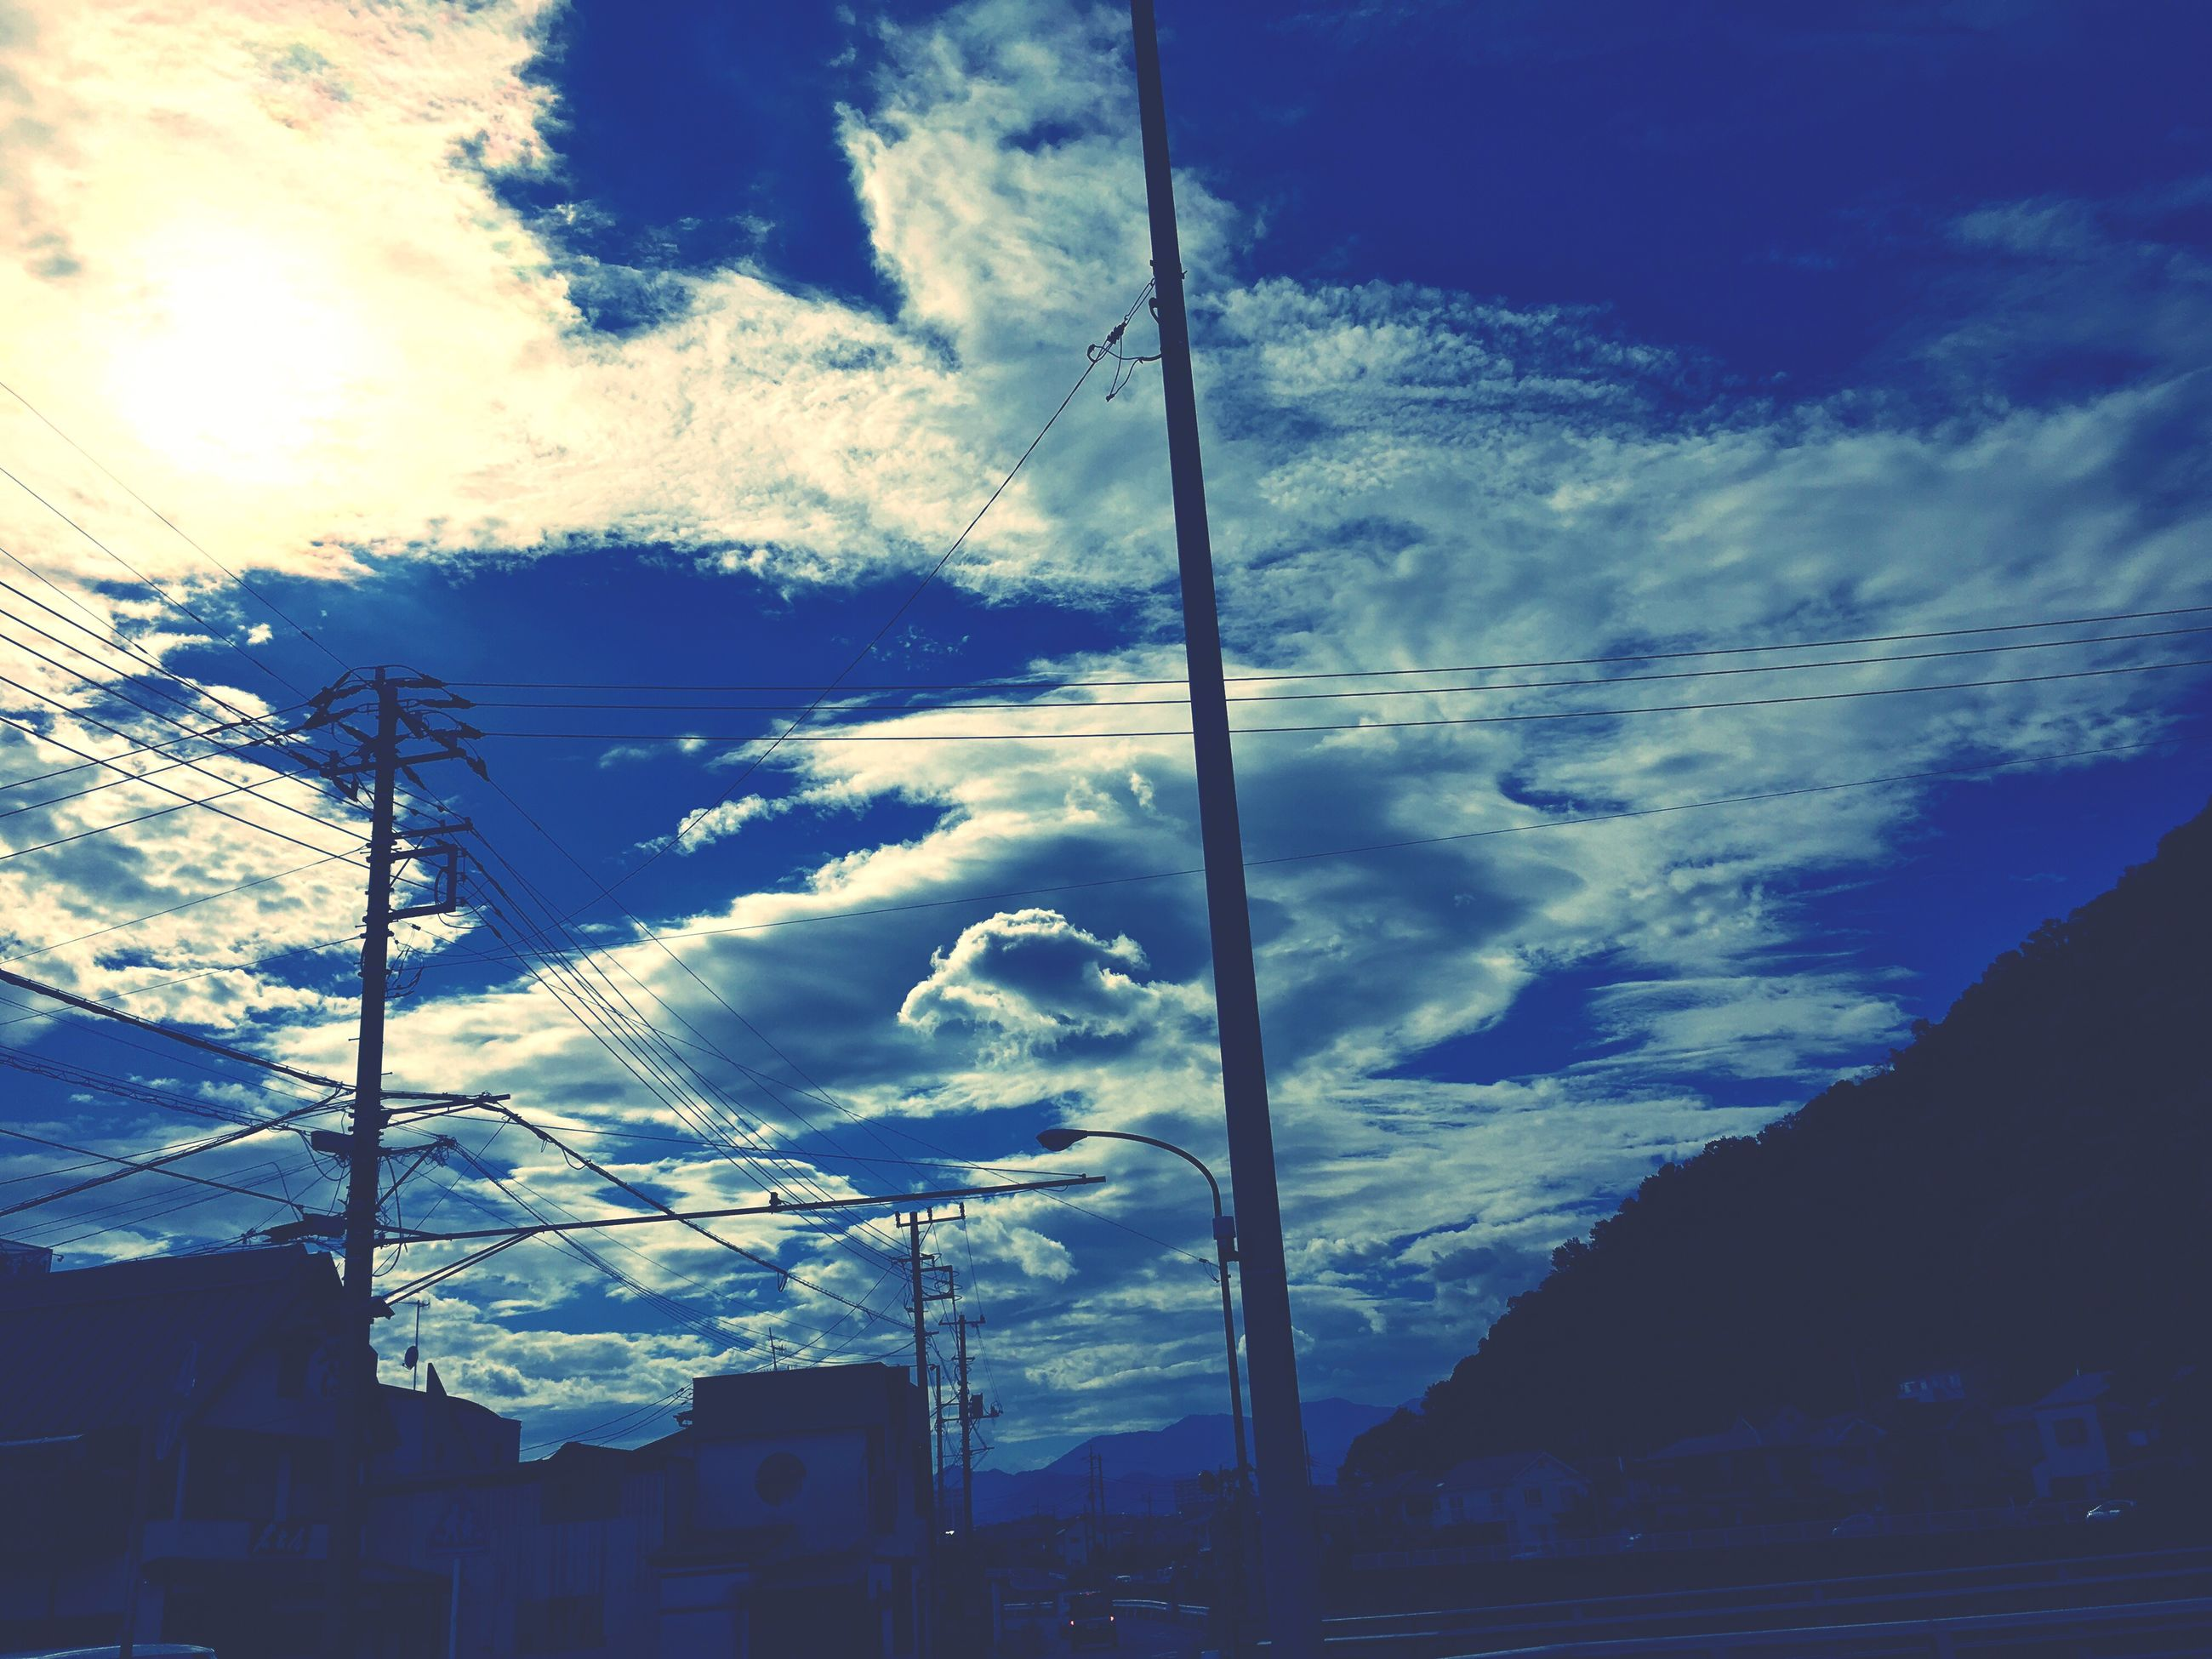 sky, cloud - sky, power line, low angle view, cloudy, street light, cloud, blue, cable, power supply, nature, weather, outdoors, no people, beauty in nature, pole, tranquility, scenics, day, tranquil scene, overcast